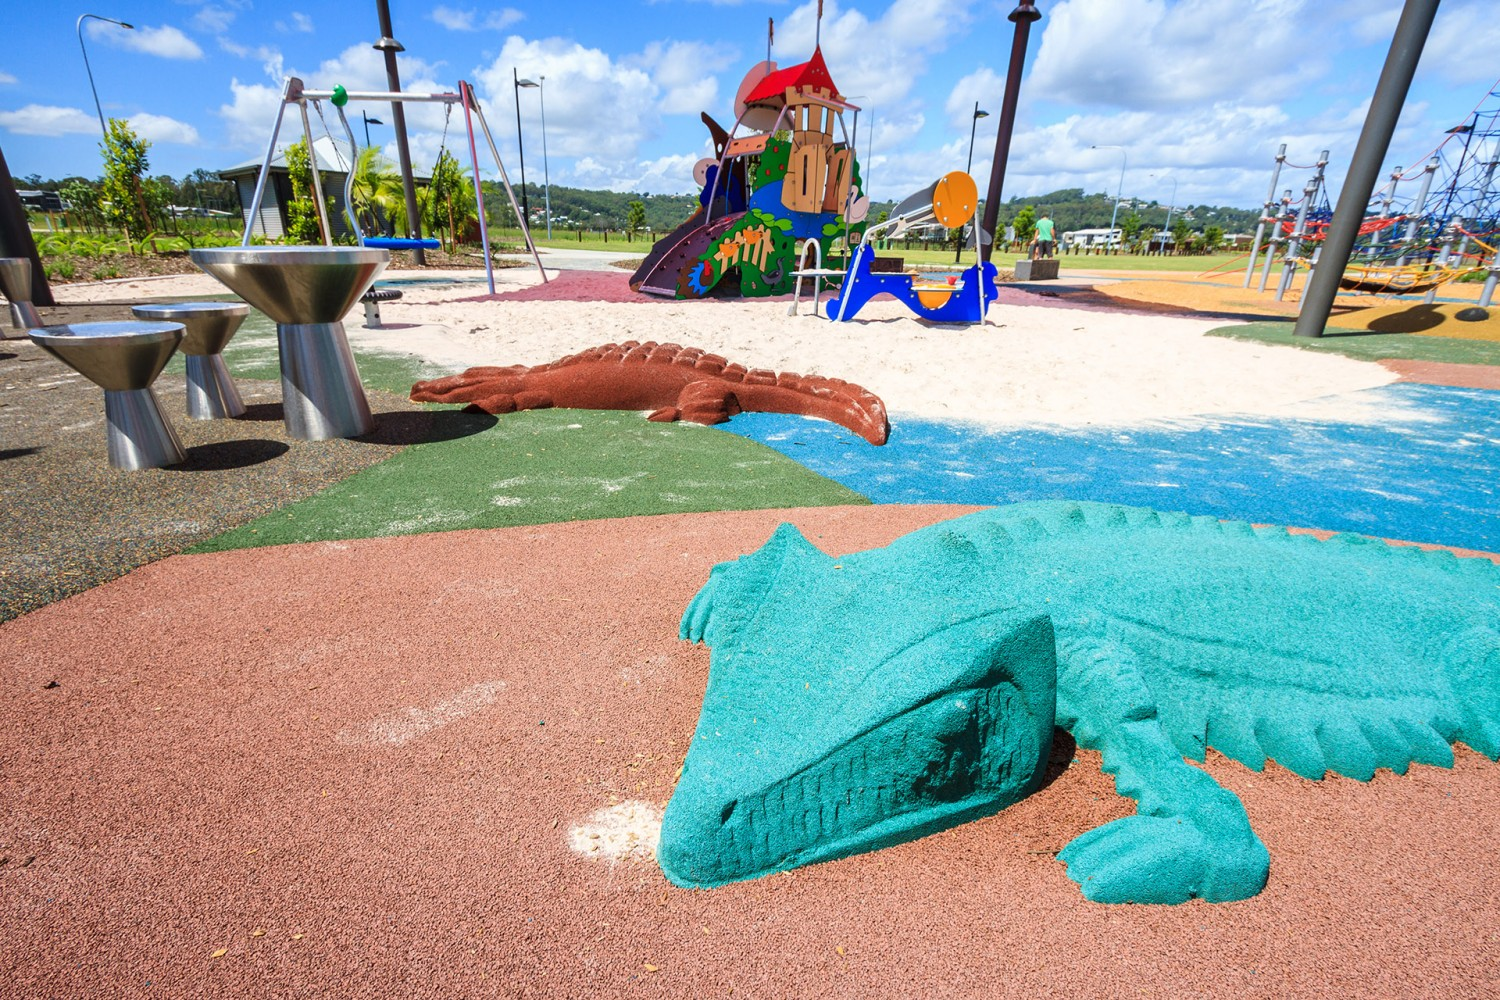 Commercial Playground Design Sunshine Cove Urban Play